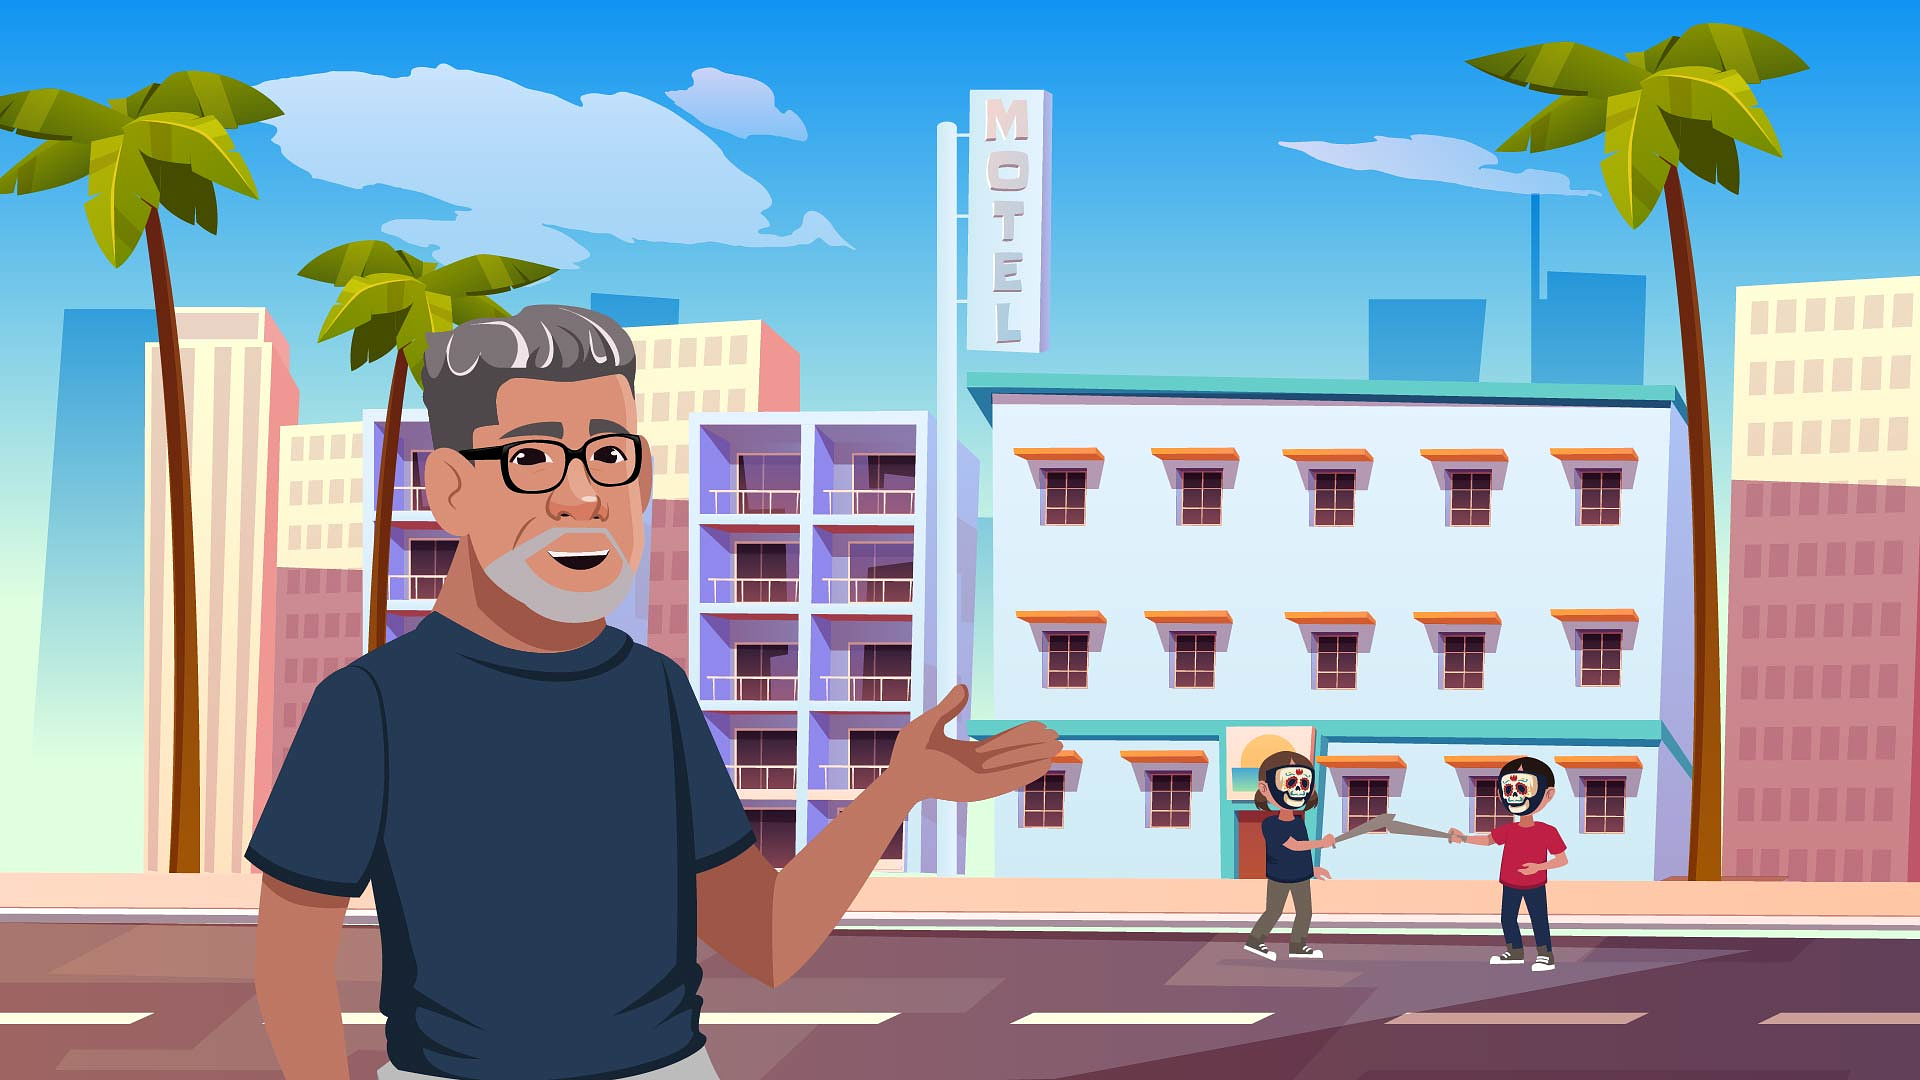 Animated Short Film Release on Carlos Samaniego's Life and Tax Career Story